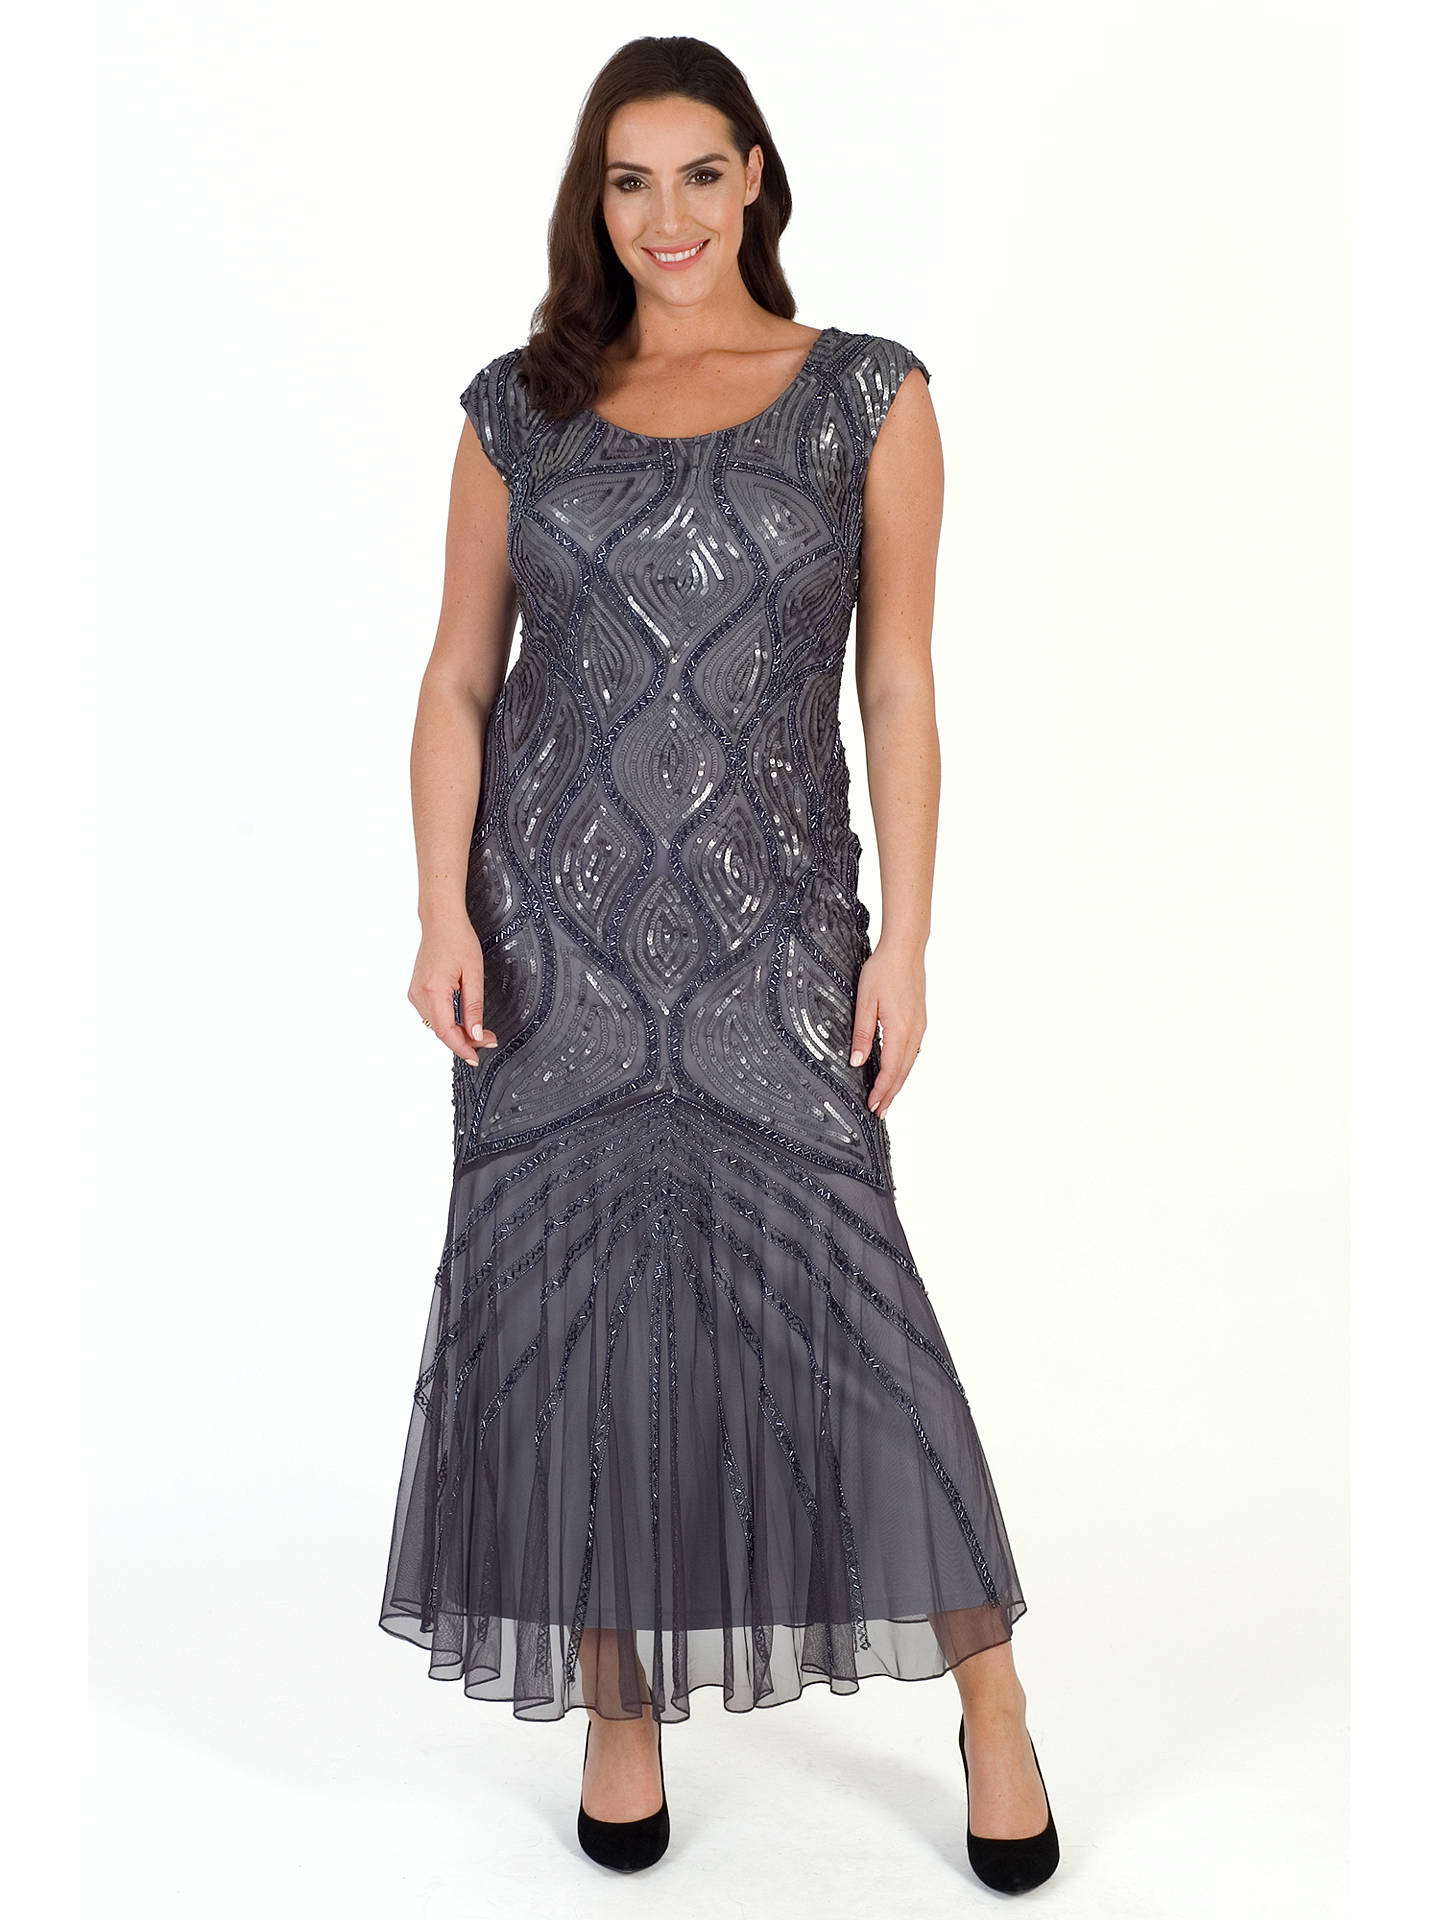 BuyChesca Beaded Mesh Dress, Dark Grey, 14 Online at johnlewis.com